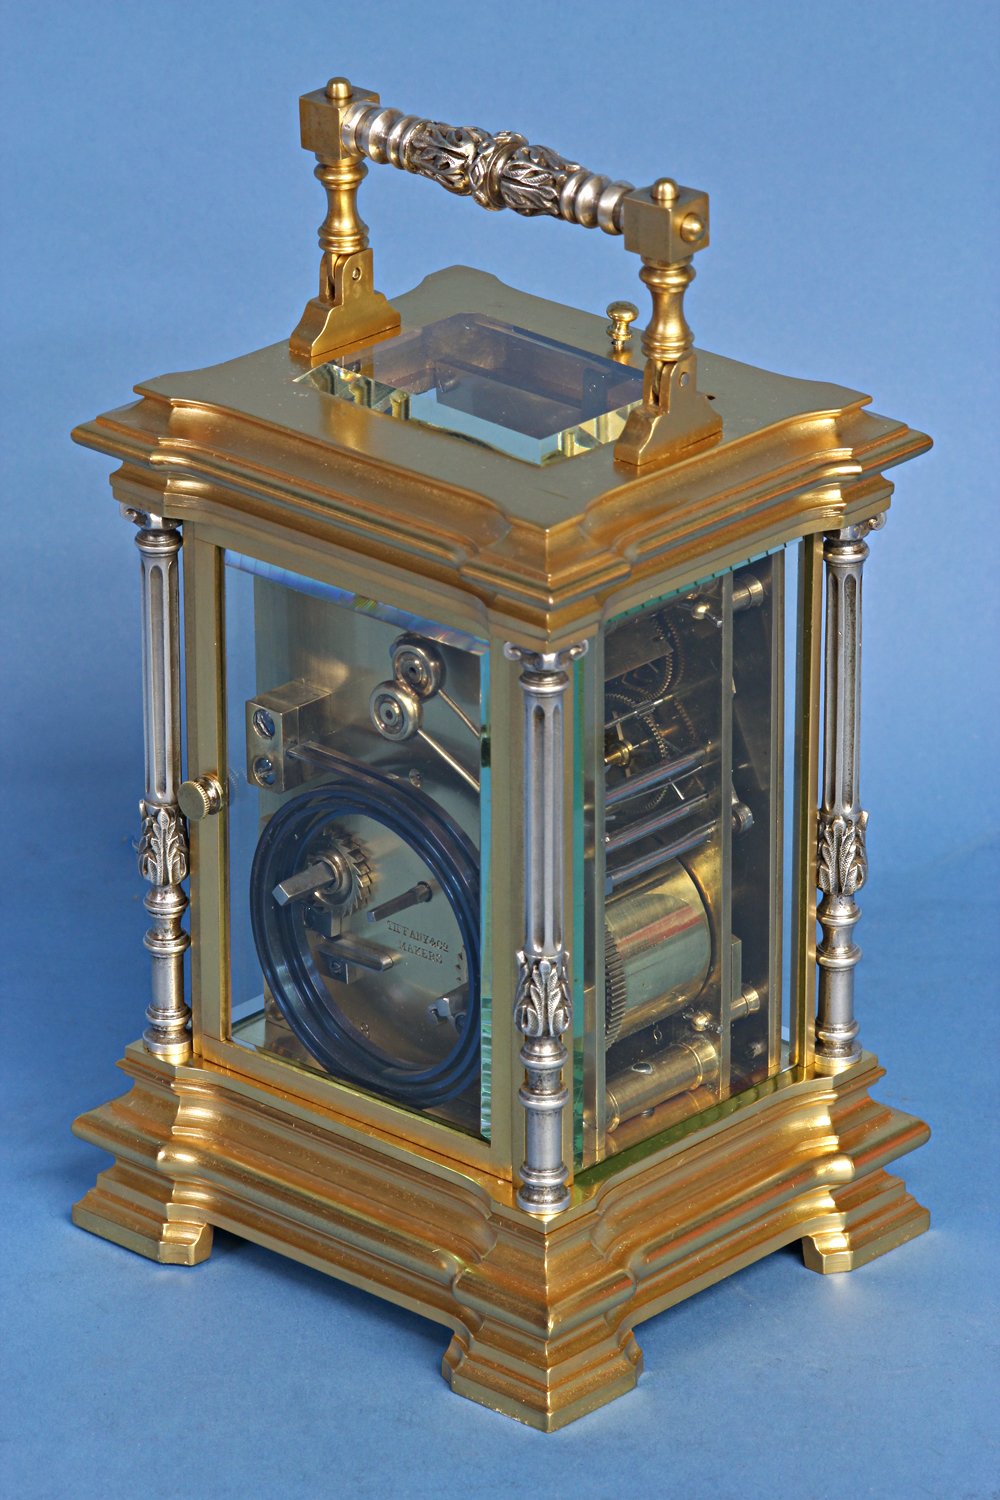 c.1885 Petite-Sonnerie Carriage Clock by Tiffany Makers.